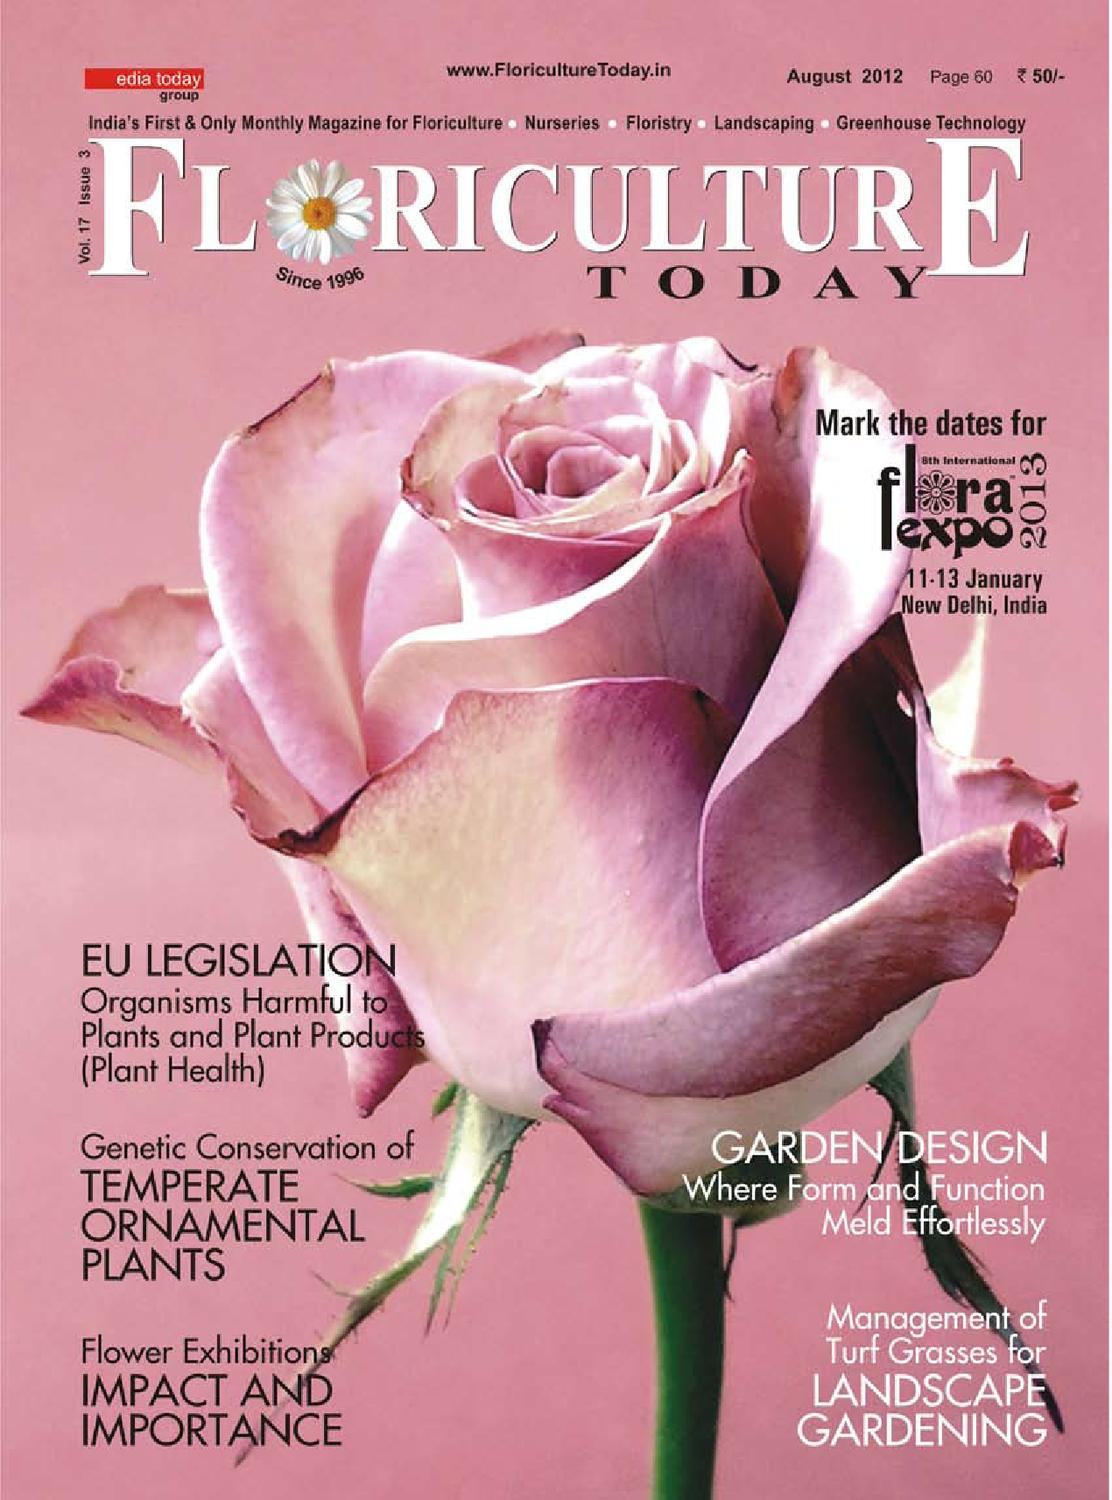 FLORICULTURE TODAY - August 2012 by Media Today Pvt  Ltd